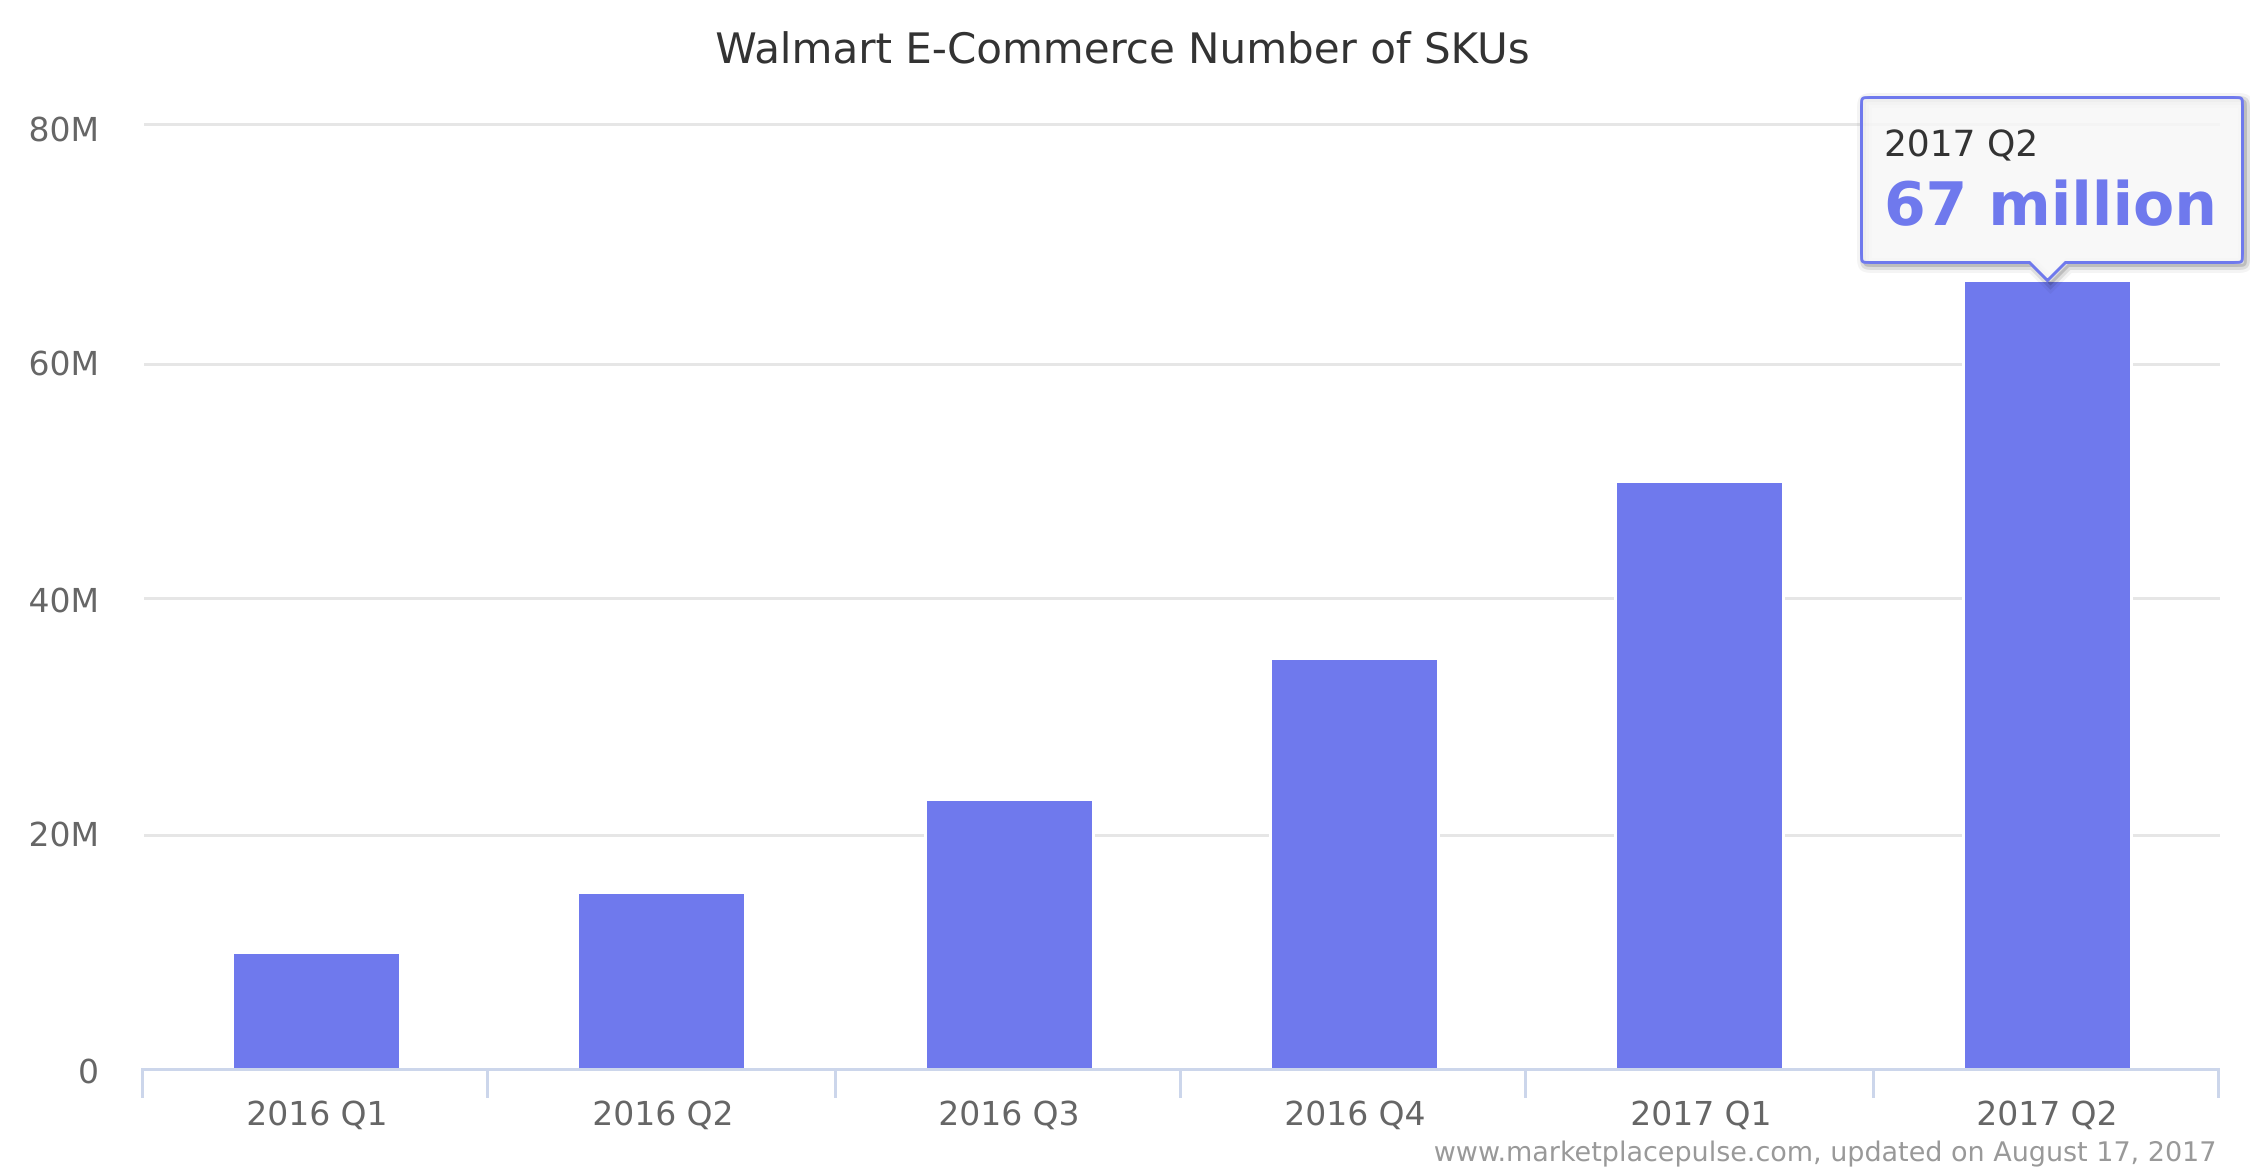 Walmart E-Commerce Number of SKUs